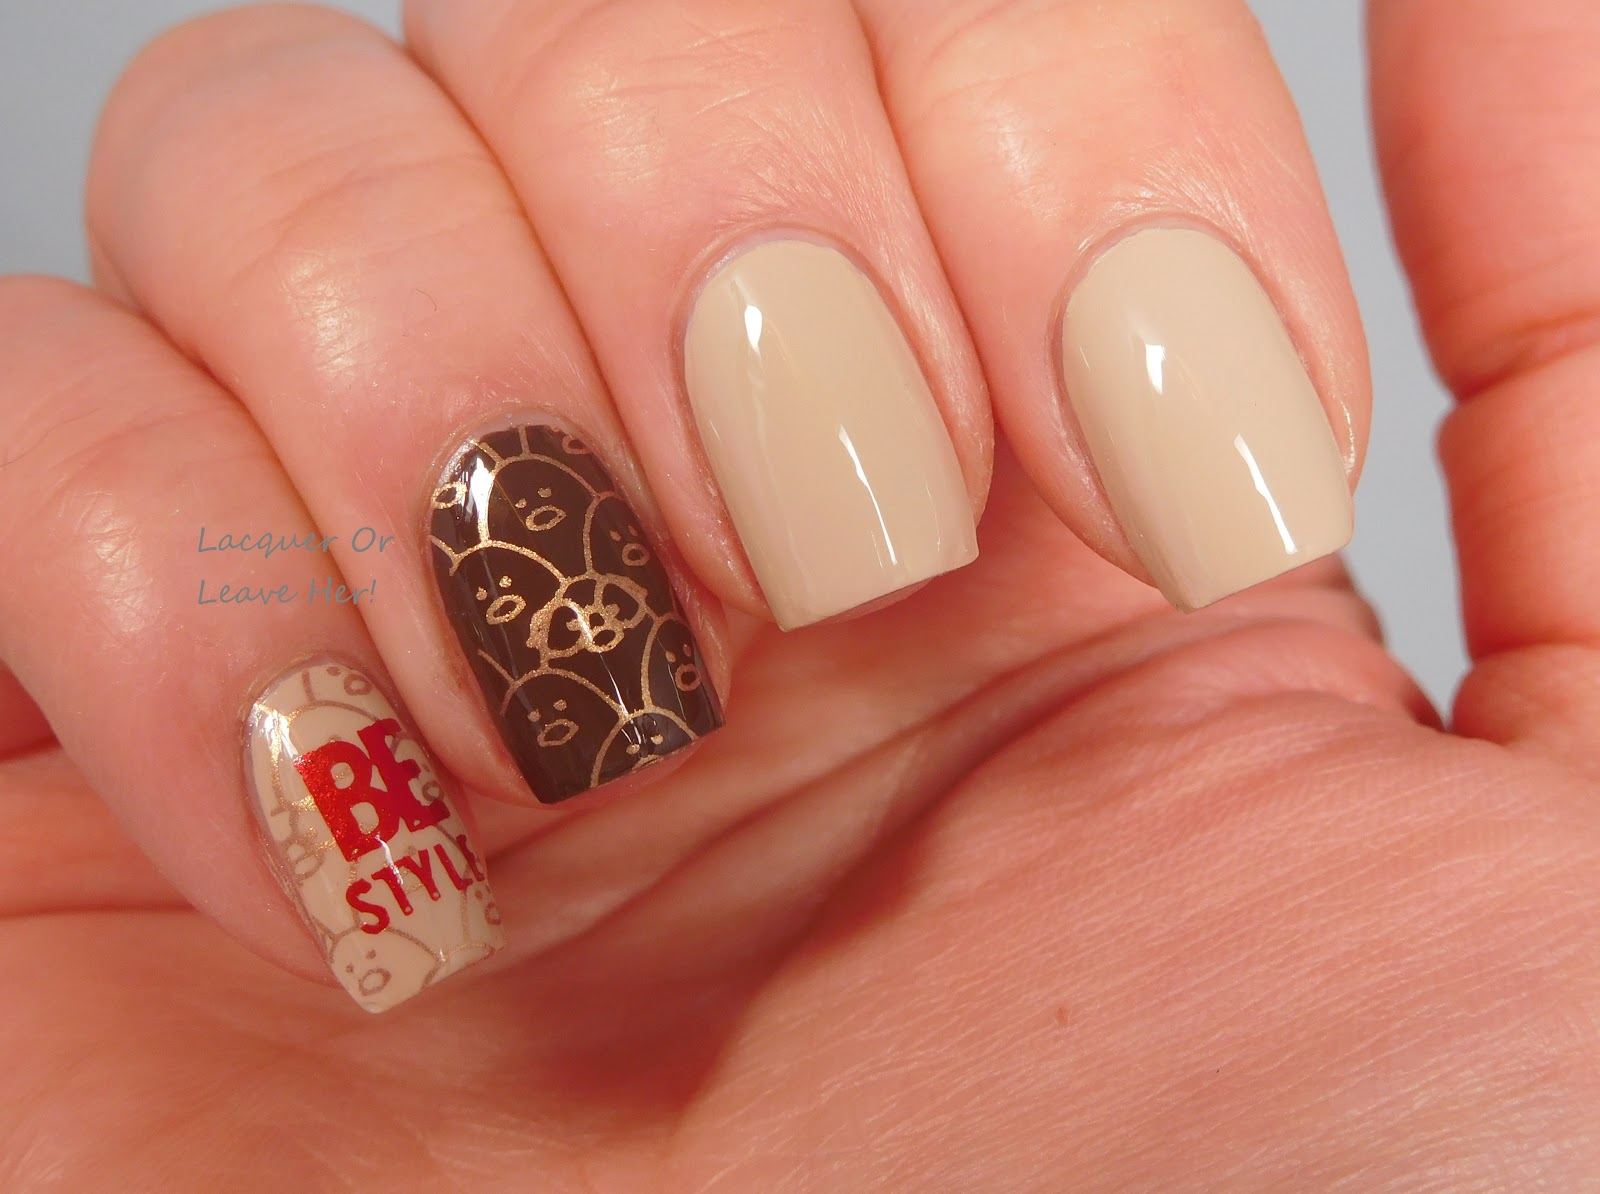 Lacquer or Leave Her!: Review: Lina Nail Art Supplies ...